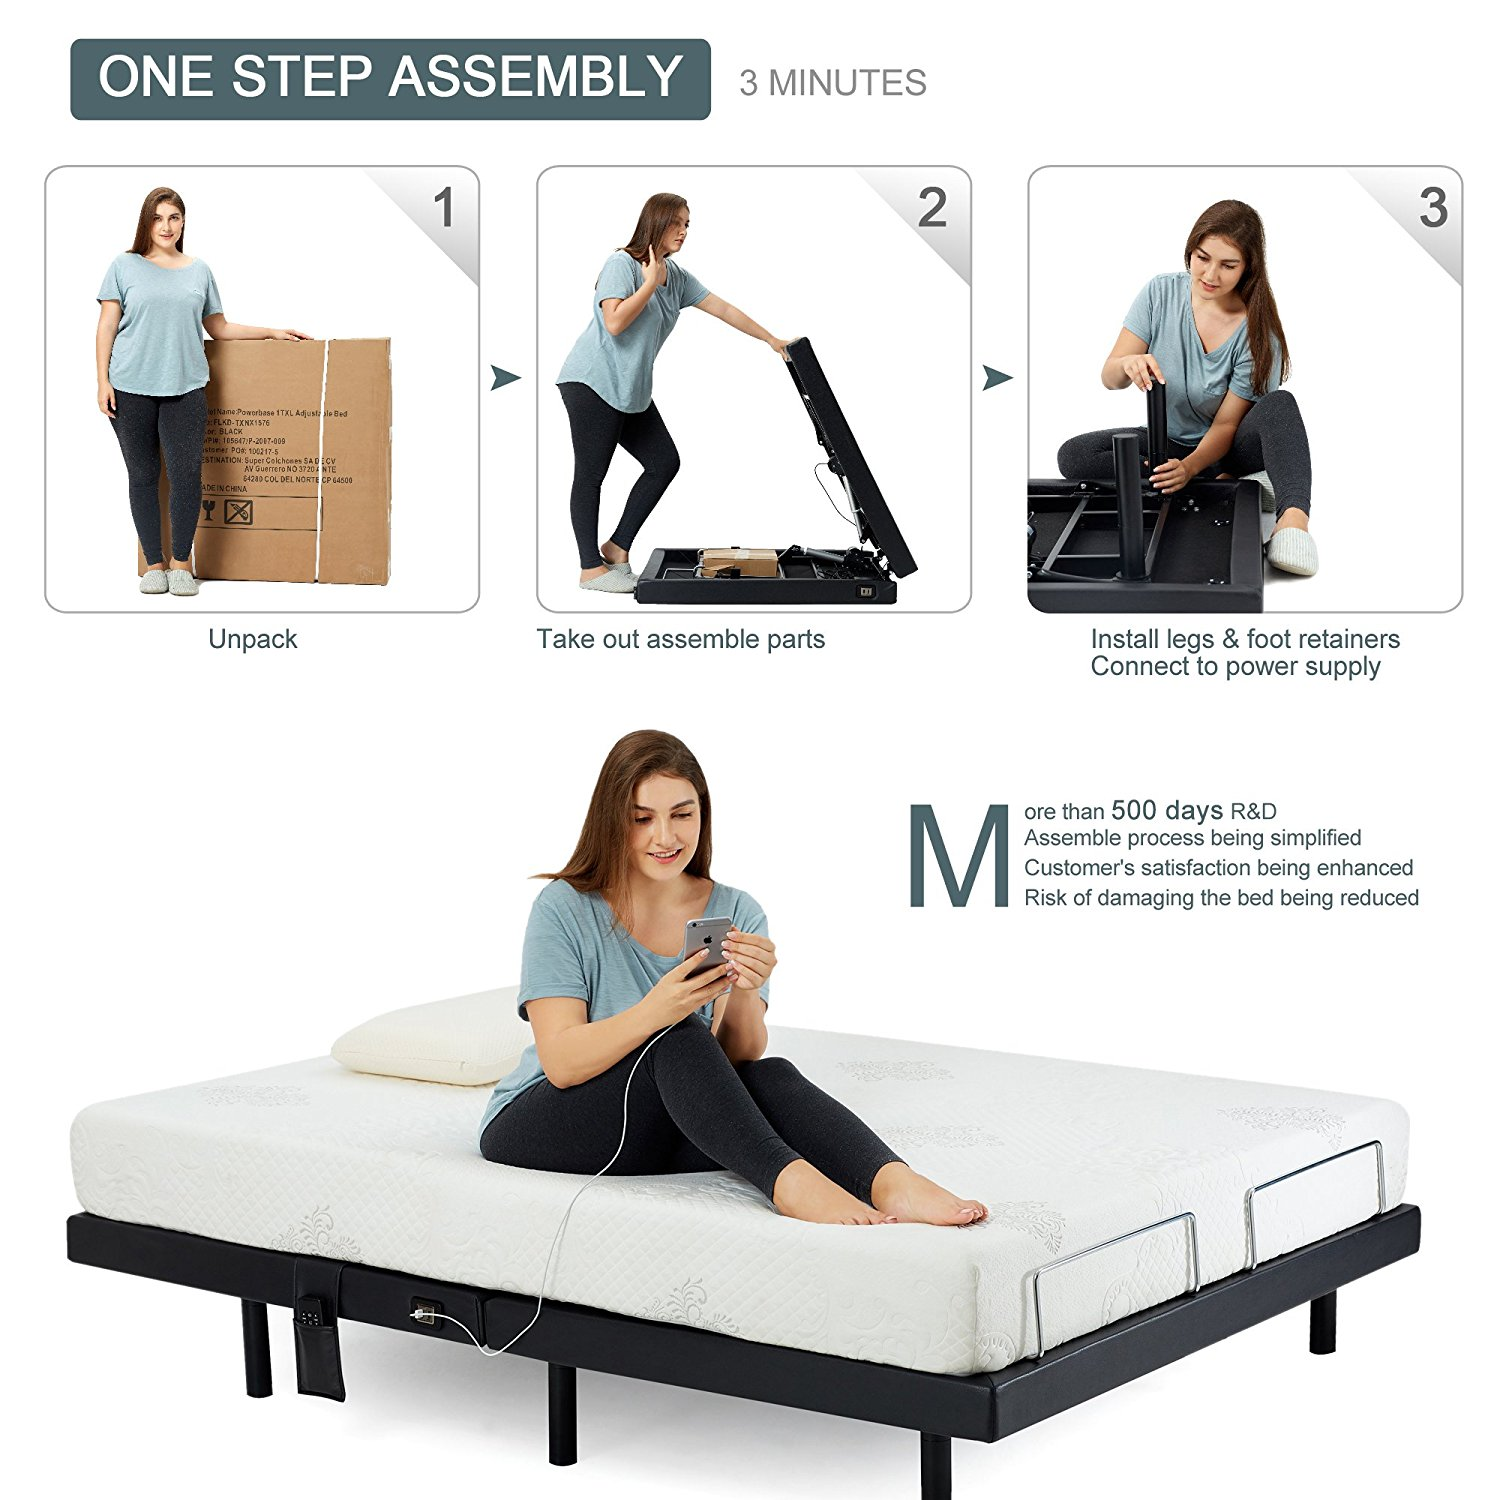 Hofish Adjustable Bed Assembly Process